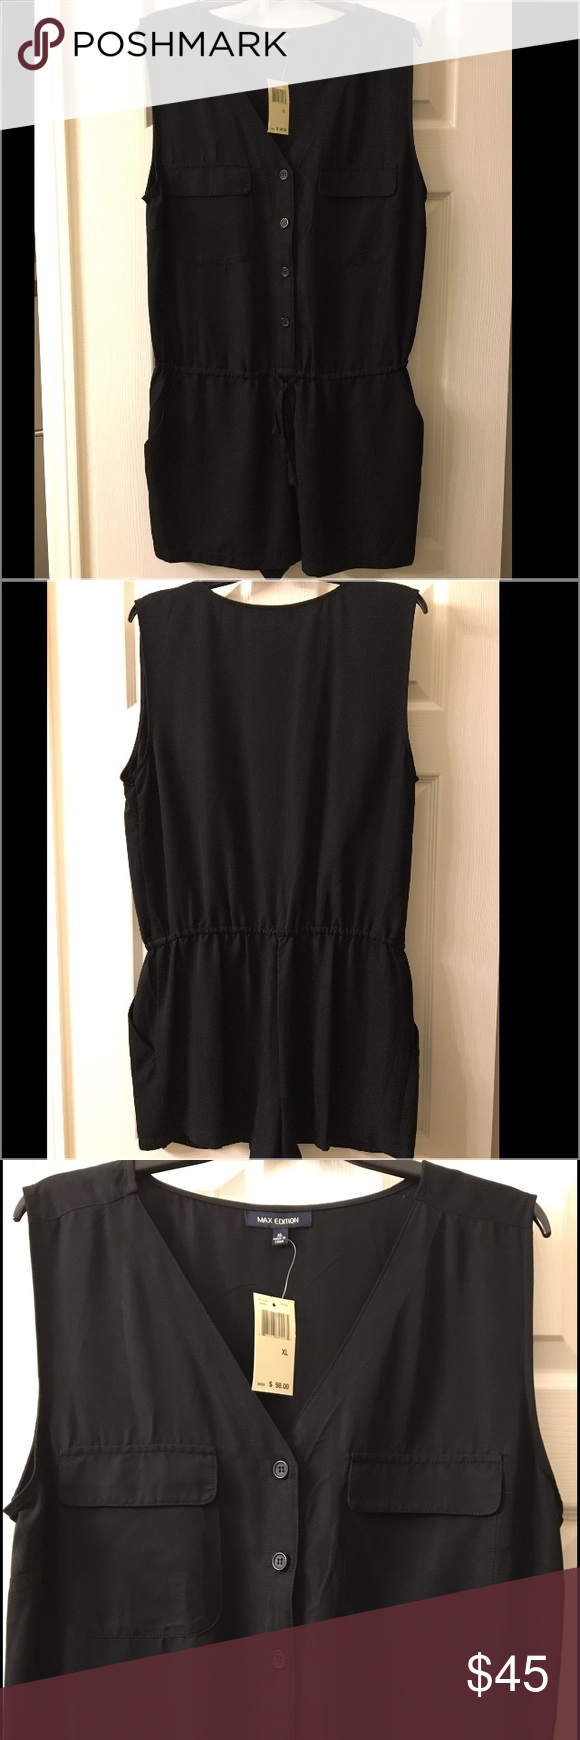 Max Edition Romper Black sleeveless romper with front and side pockets. Max Edition Other